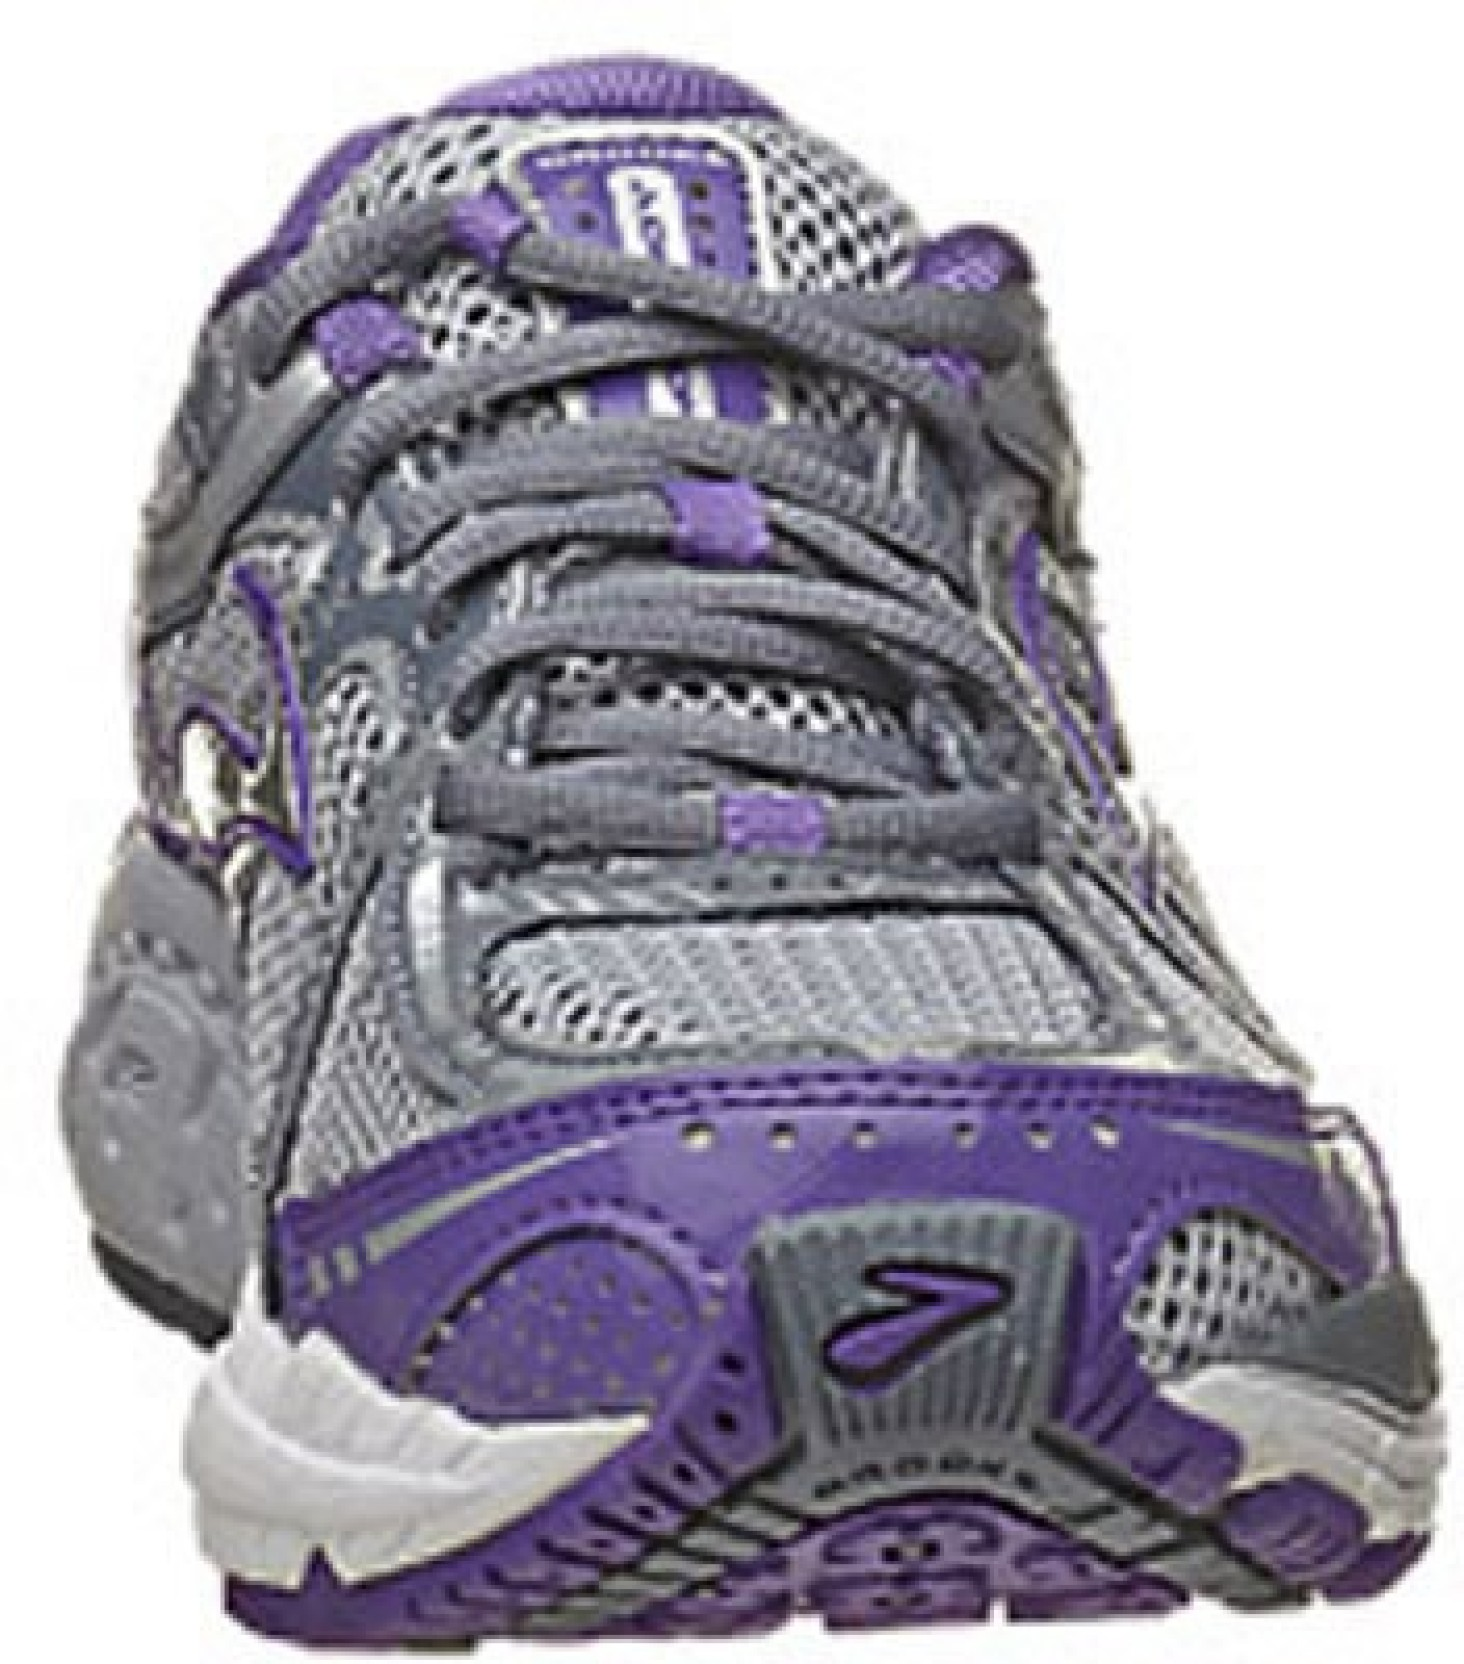 dd73f170998 Brooks Addiction 11 Women s Running Shoes For Women - Buy Purple ...